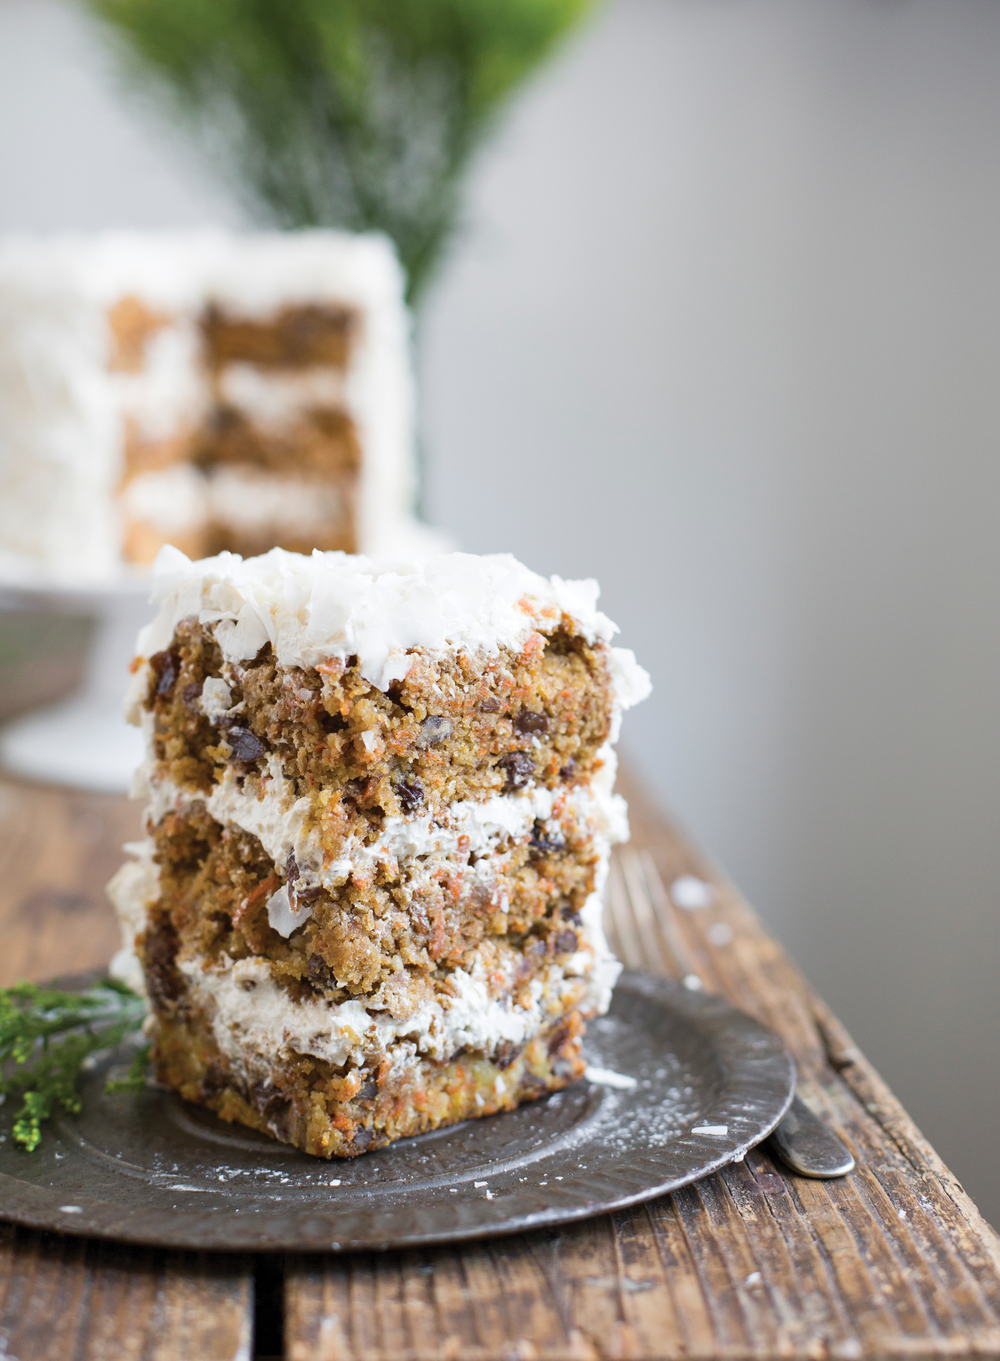 Paleo Maple Carrot Cake Recipe + My Paleo Patisserie Book Review! | www.barbellsandbaking.com